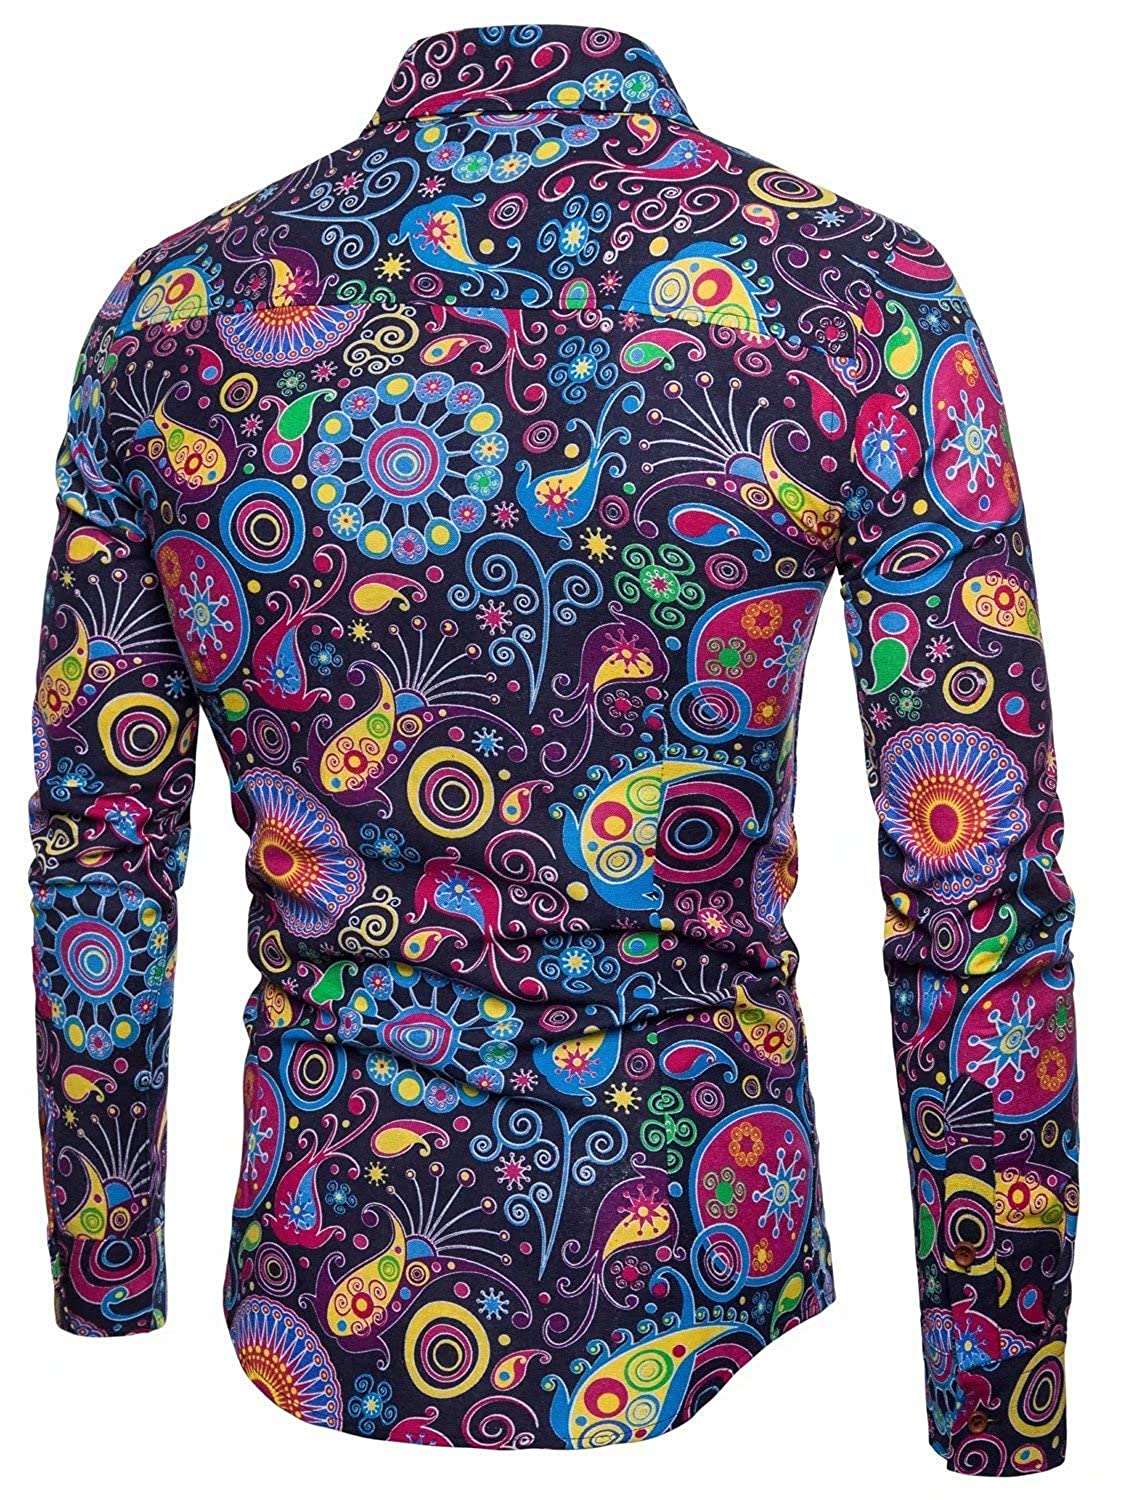 348d72c4aafb EMAOR Mens Stylish Floral Long Sleeve Shirt & Short Sleeve Shirt at Amazon Men's  Clothing store: